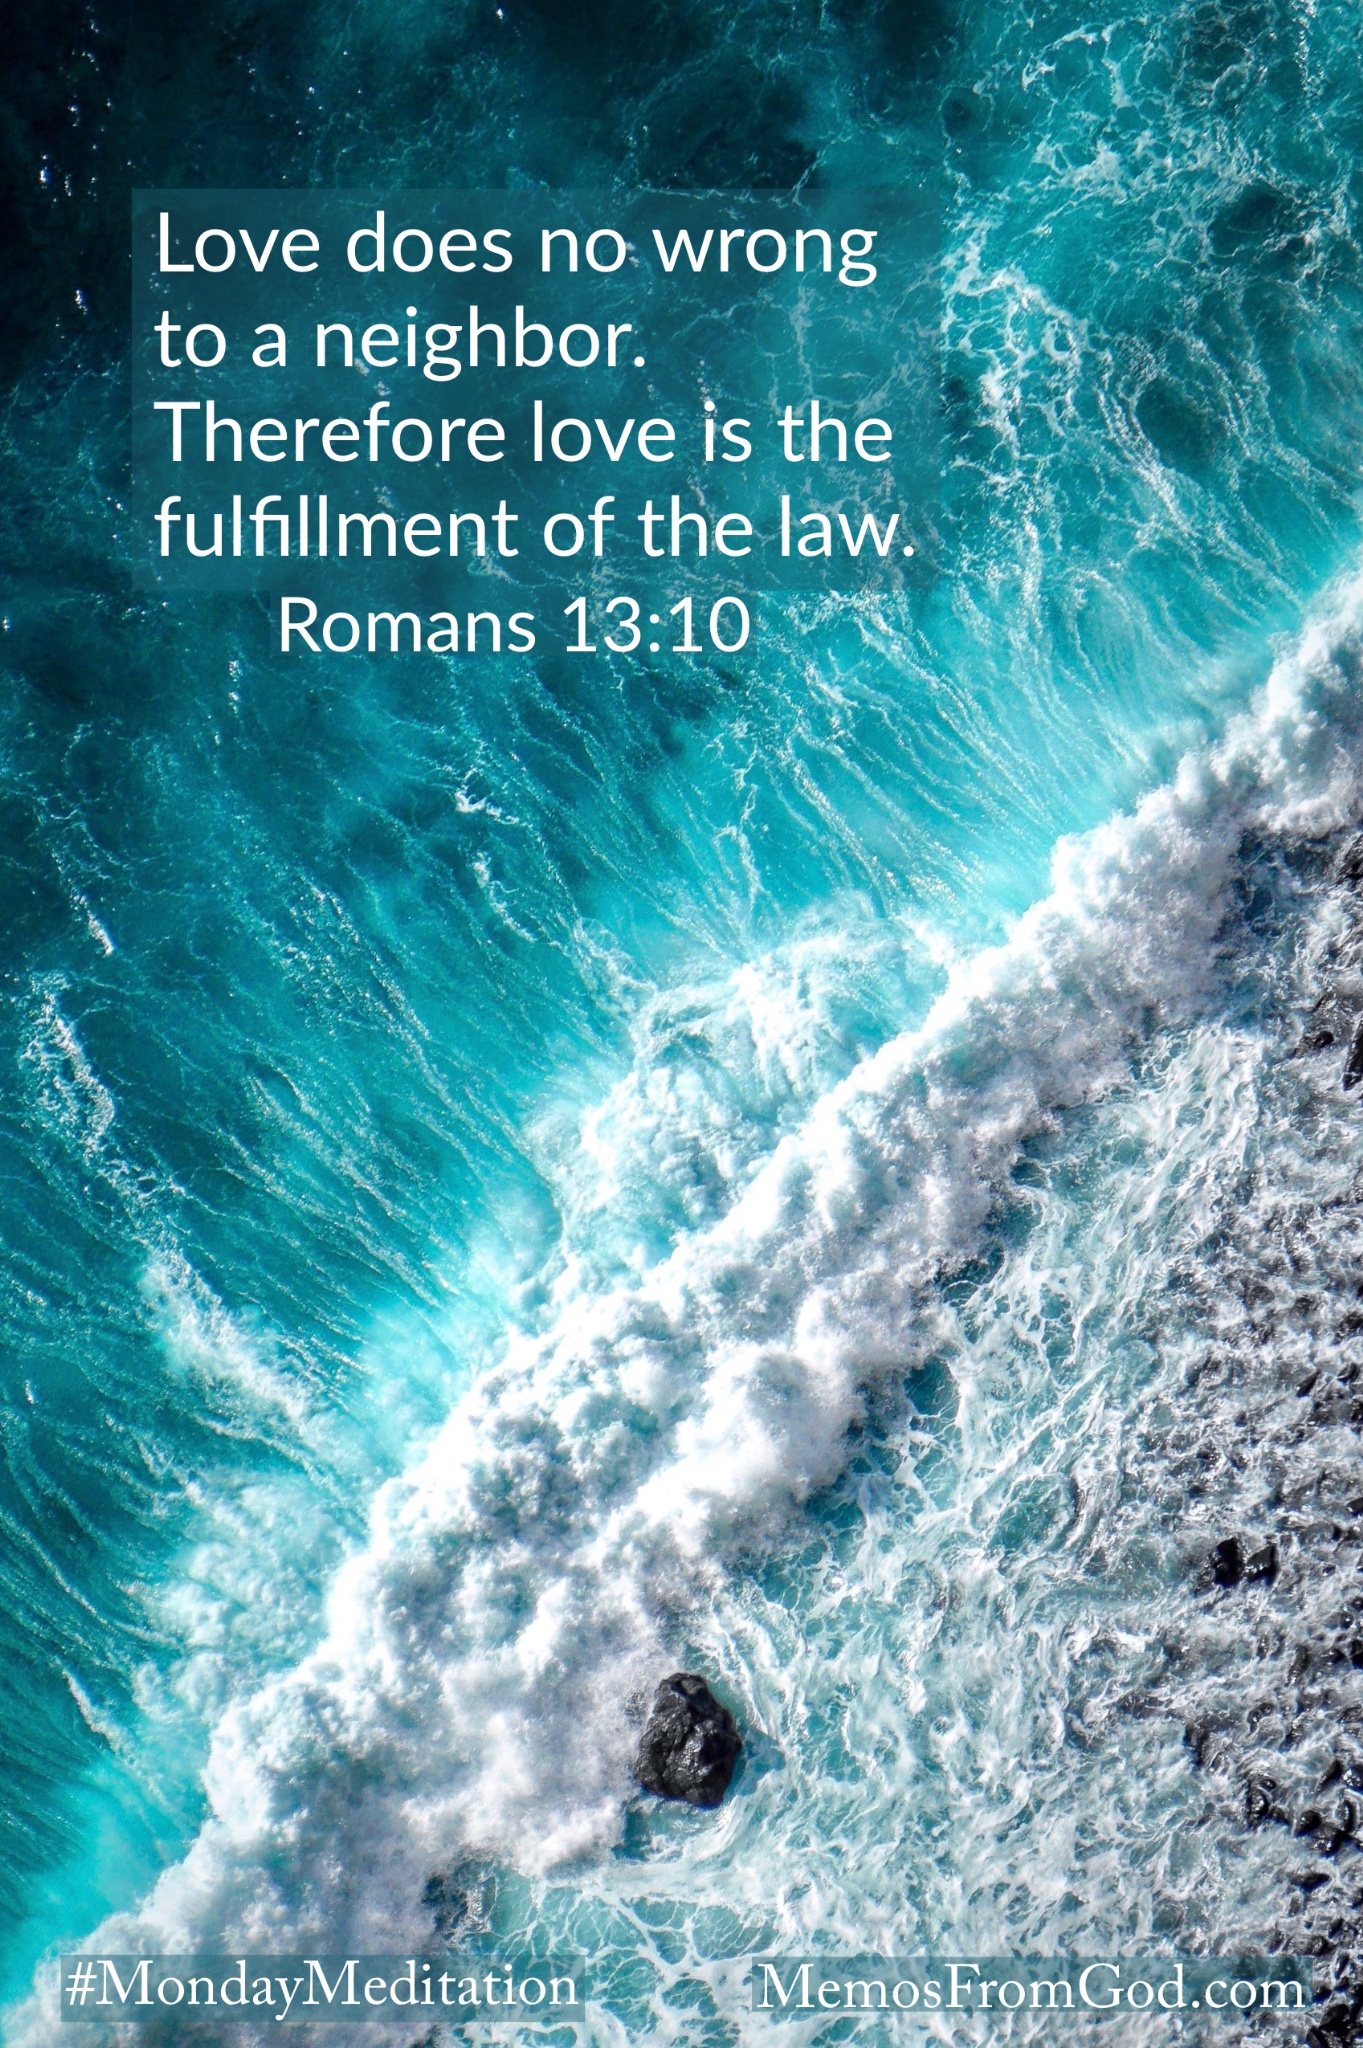 Looking down on a diagonal line of white frothy waves in a turquoise sea. Caption: Love does no wrong to a neighbor. Therefore love is the fulfillment of the law. Romans 13:10